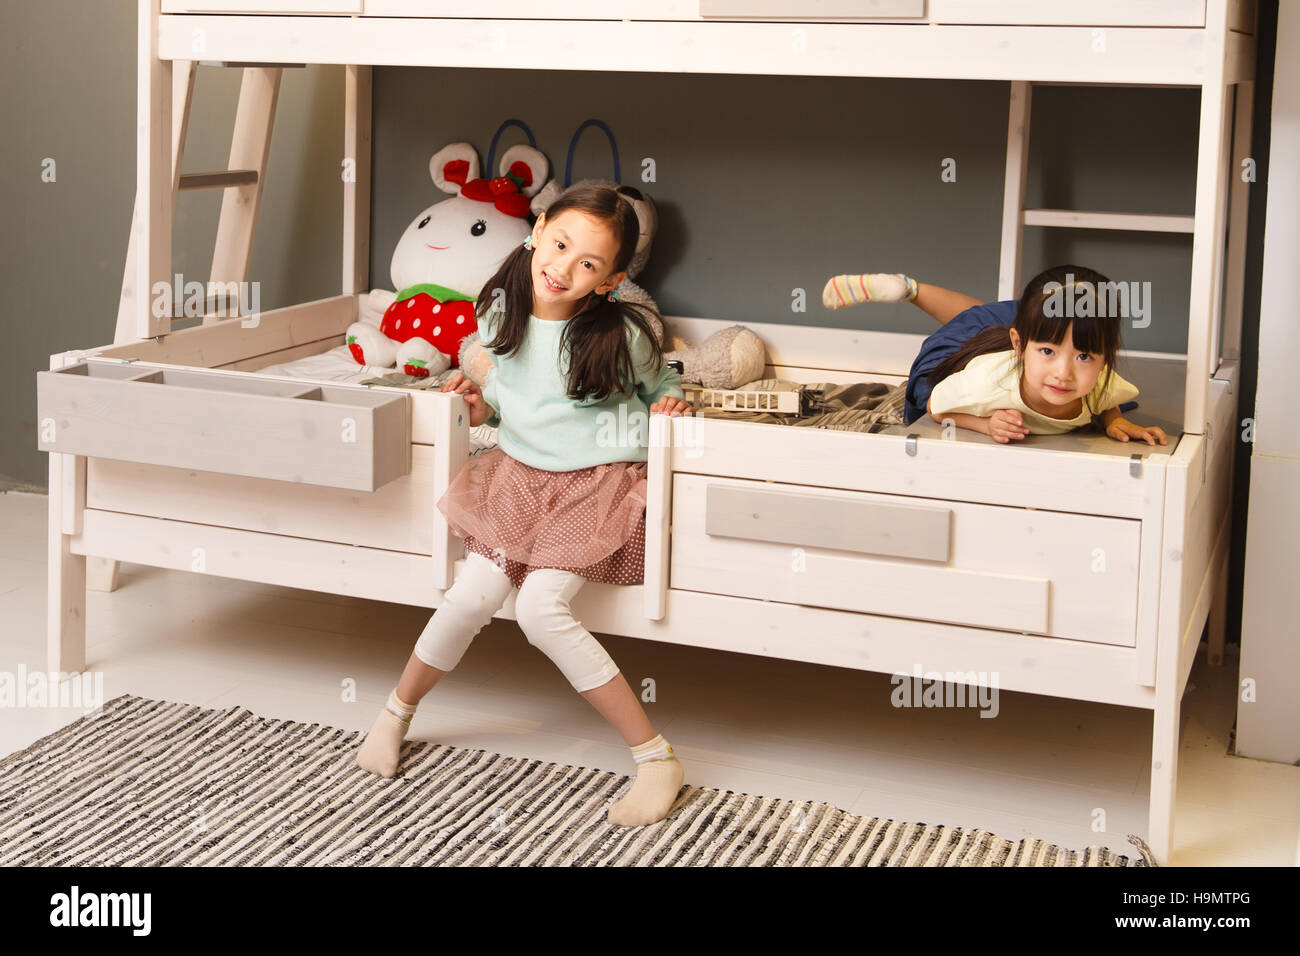 Cute little girl playing in the bedroom - Stock Image